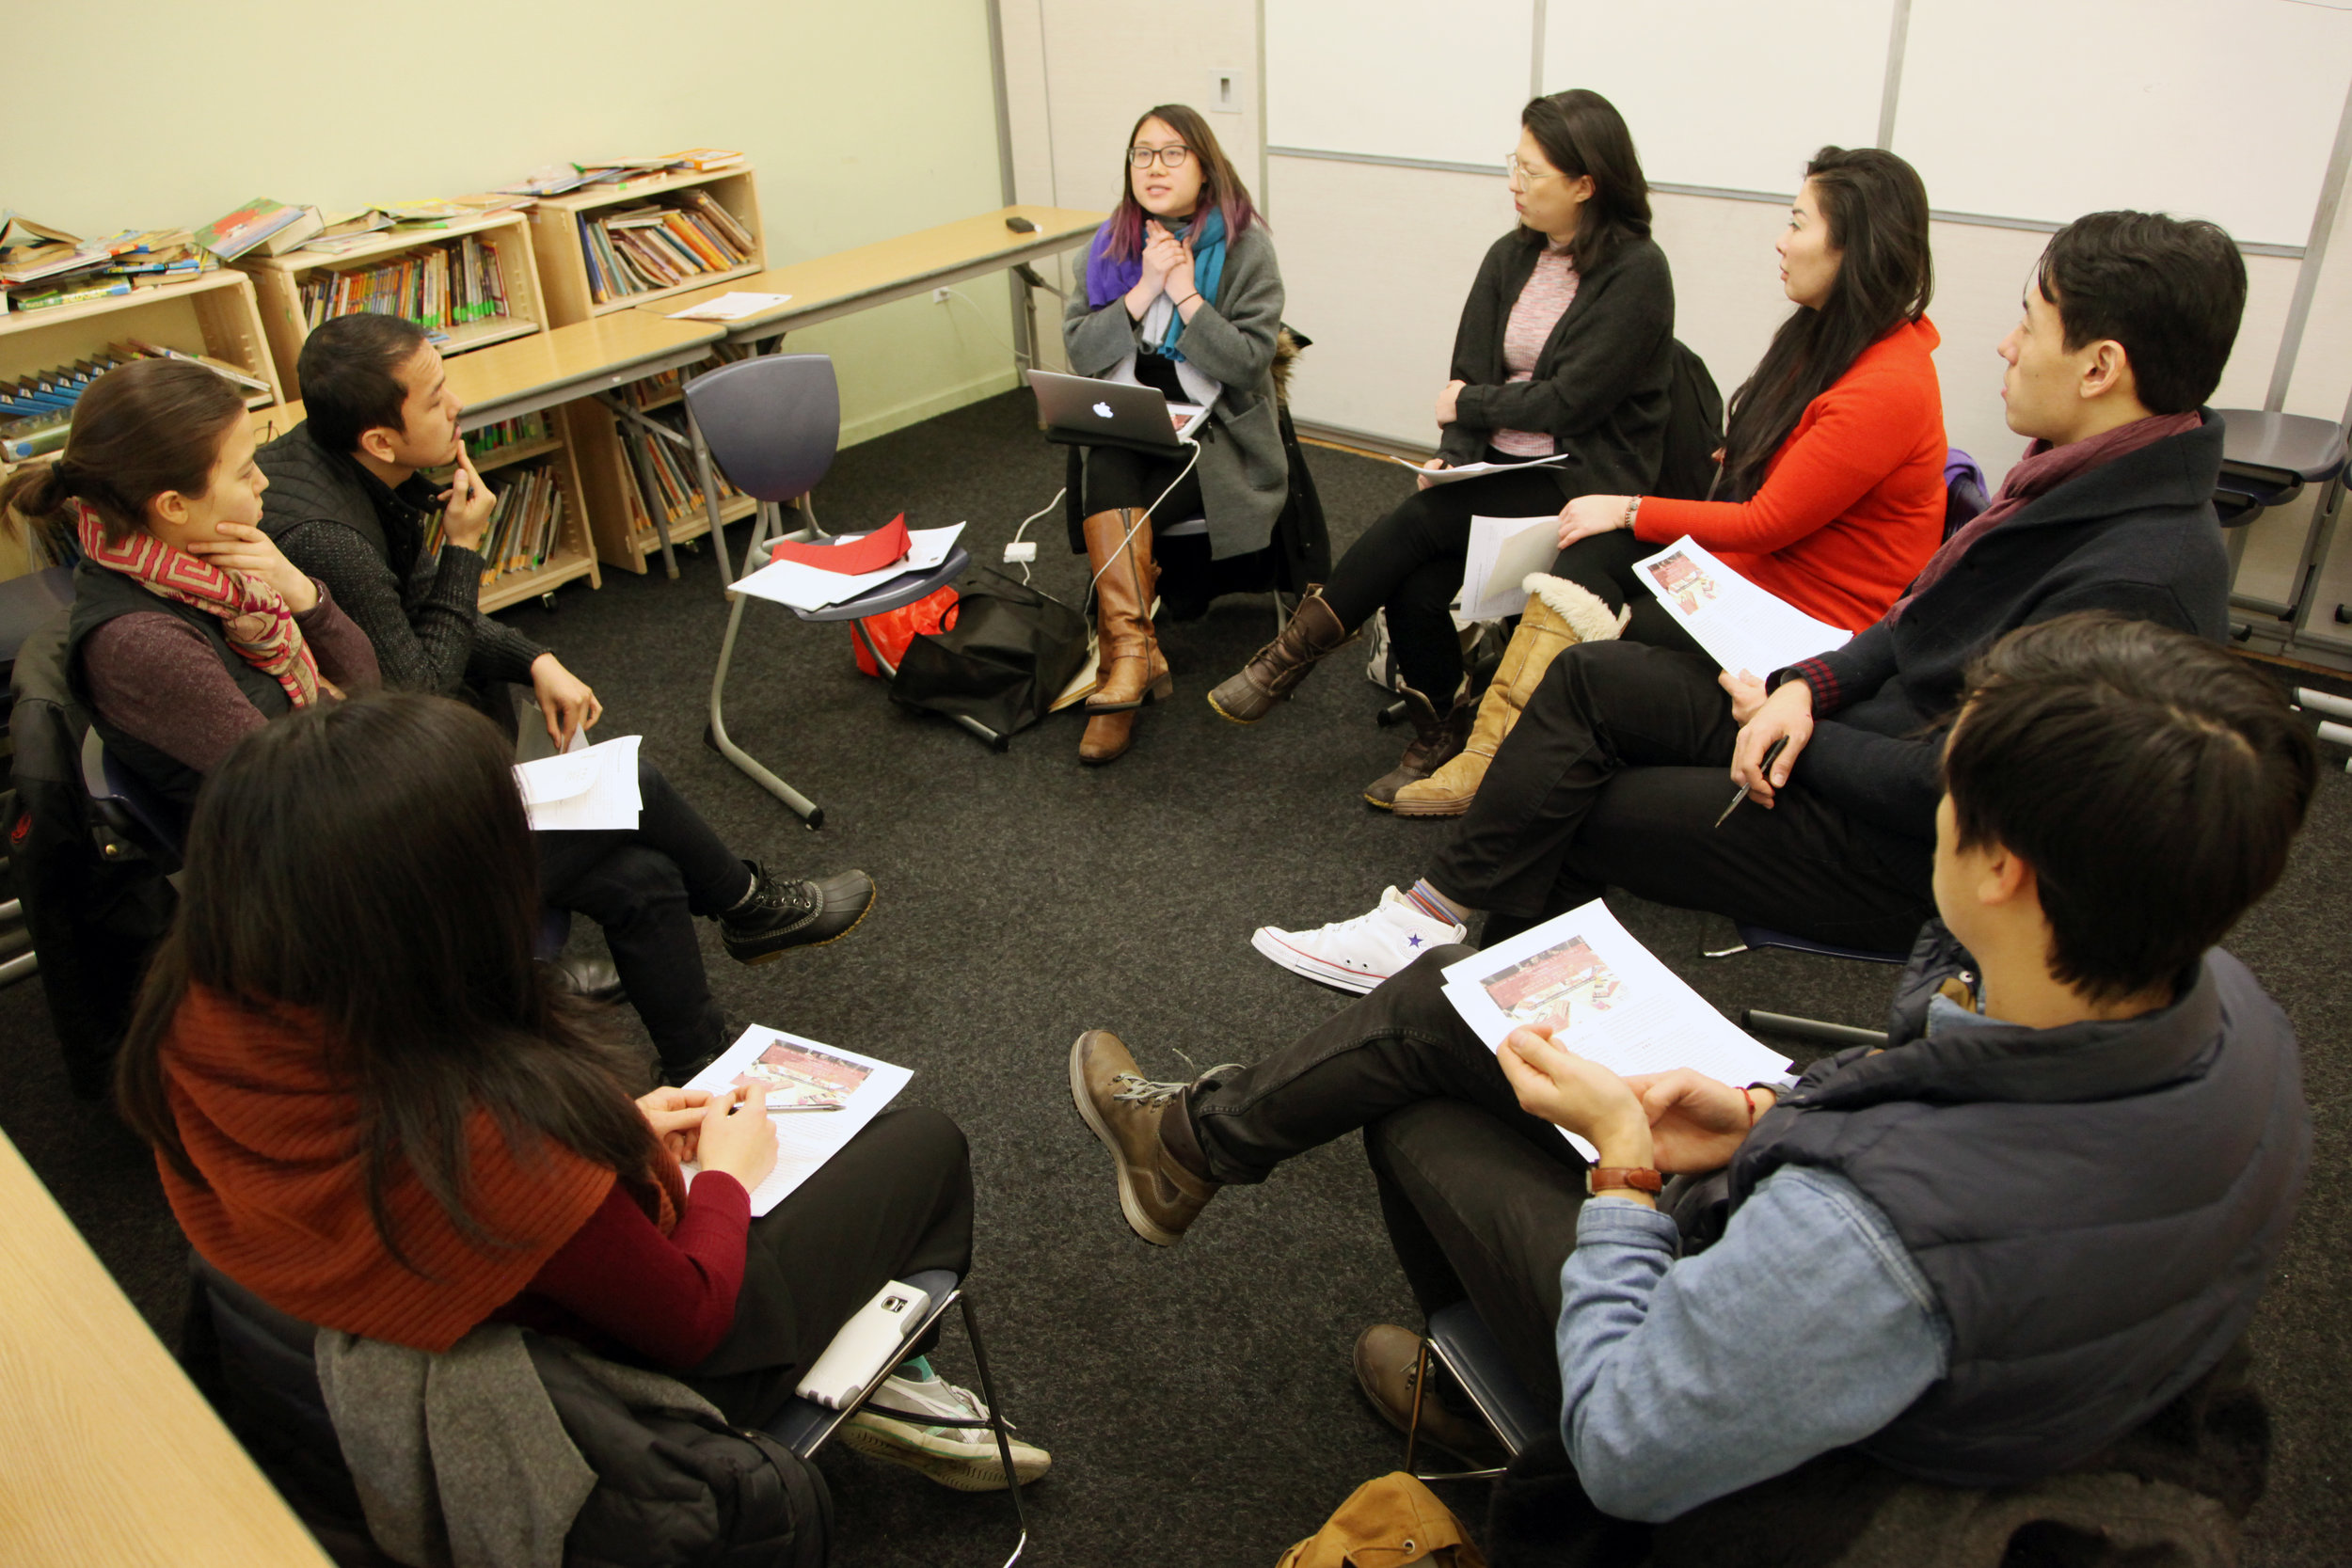 Melissa leads an introductory oral history workshop at Florentine Yamaha School on 219 Park Row.